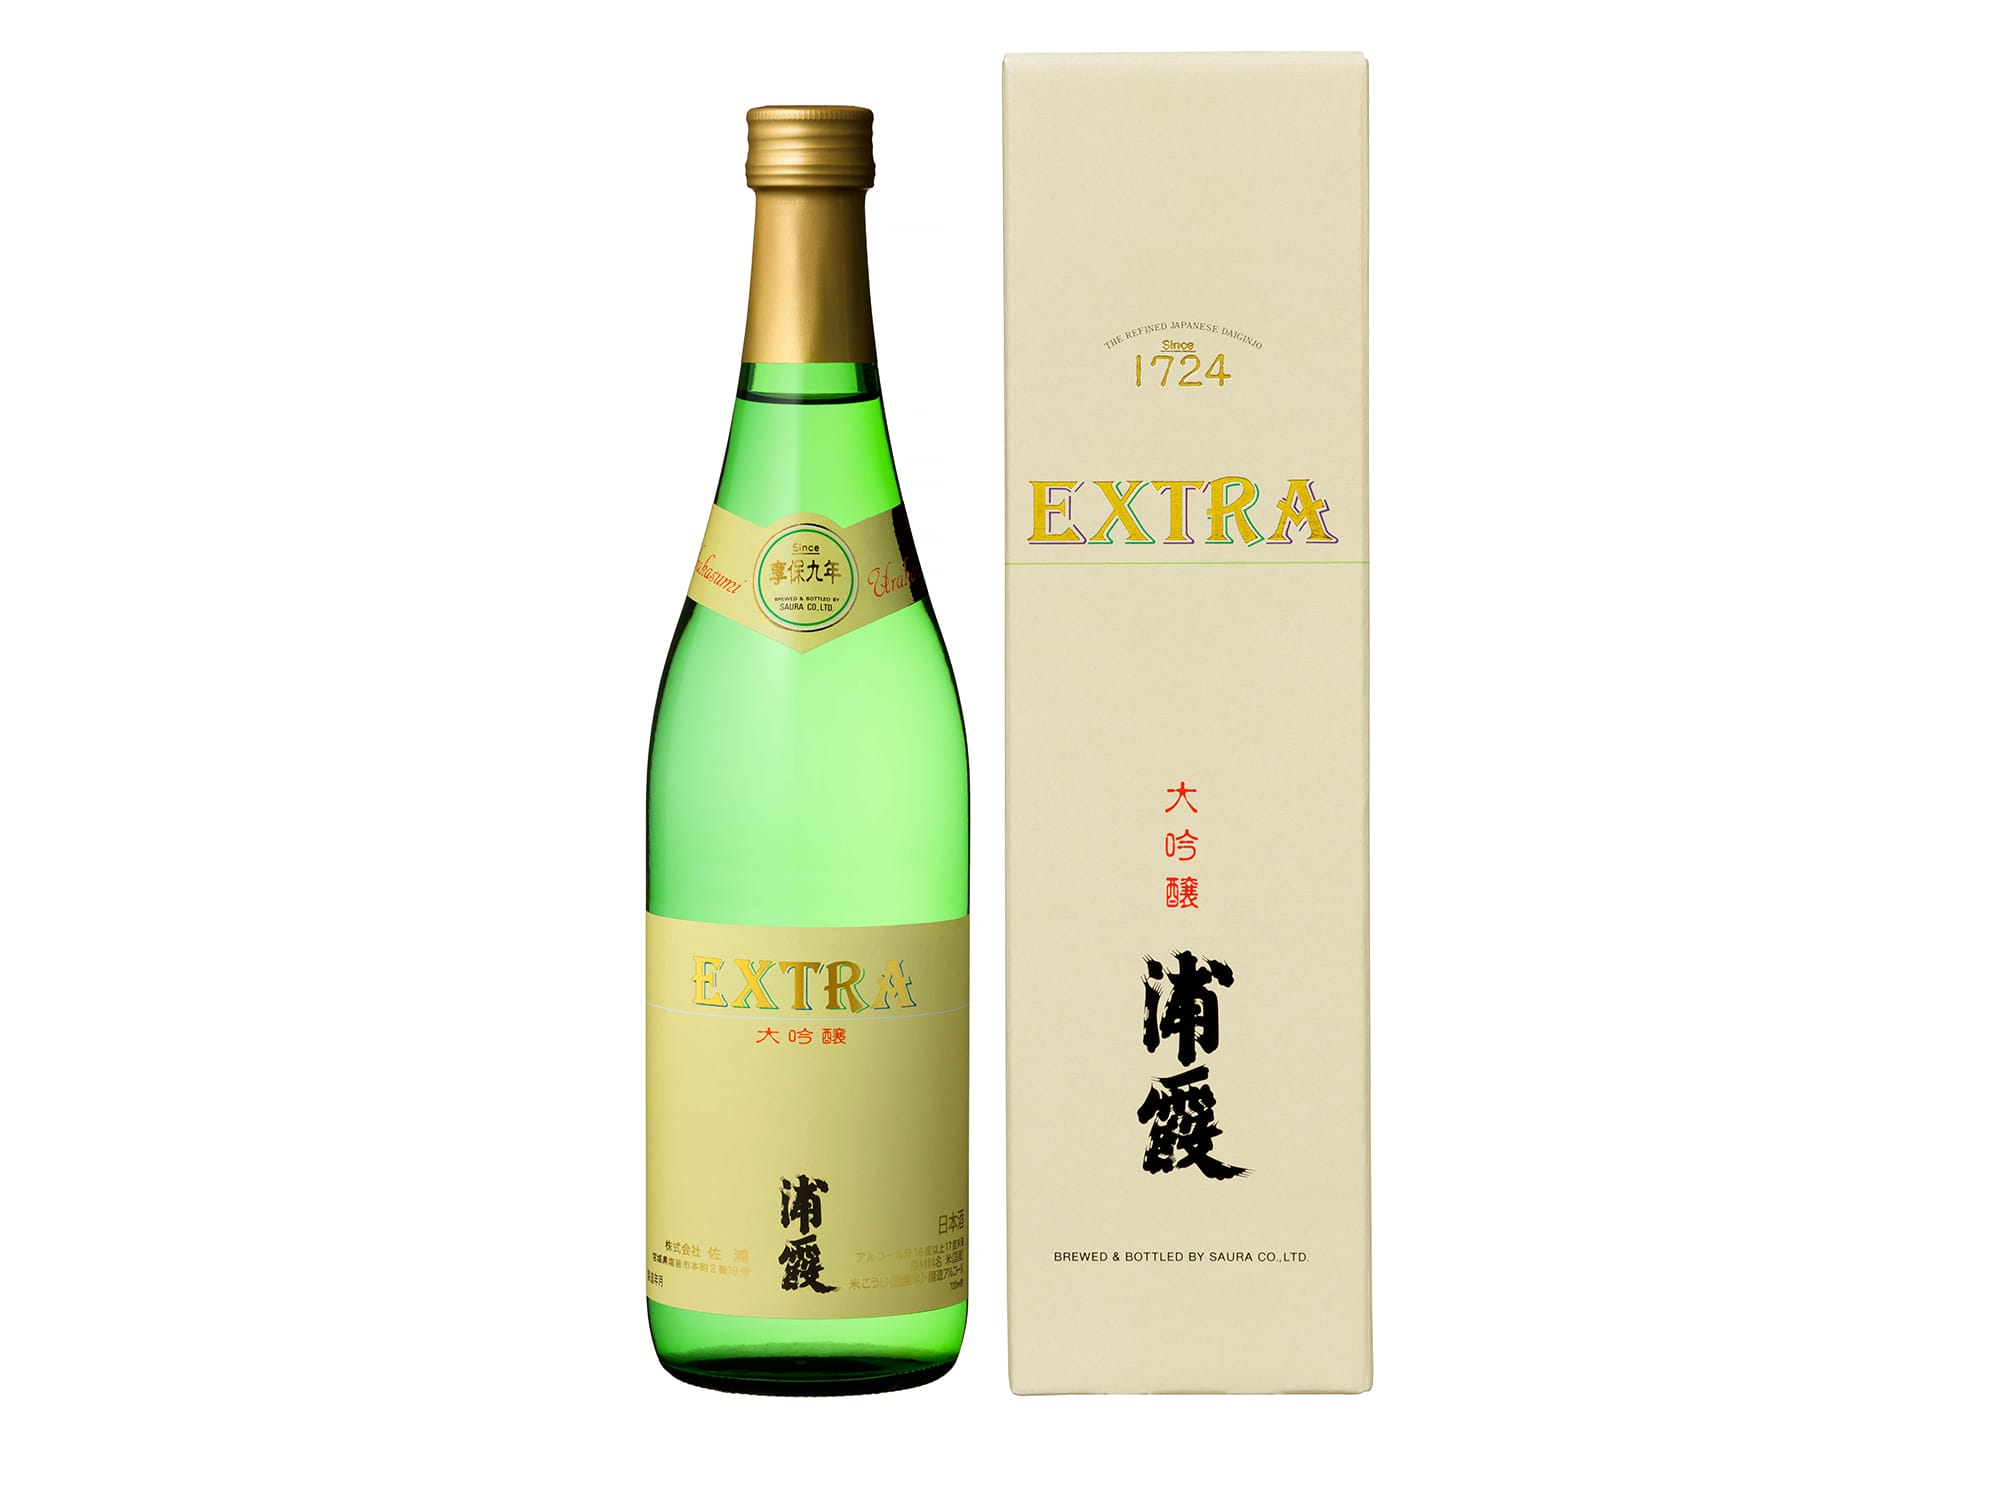 Extra Daiginjyo Urakasumi 720ml 3,800 Yen (Tax Excluded)